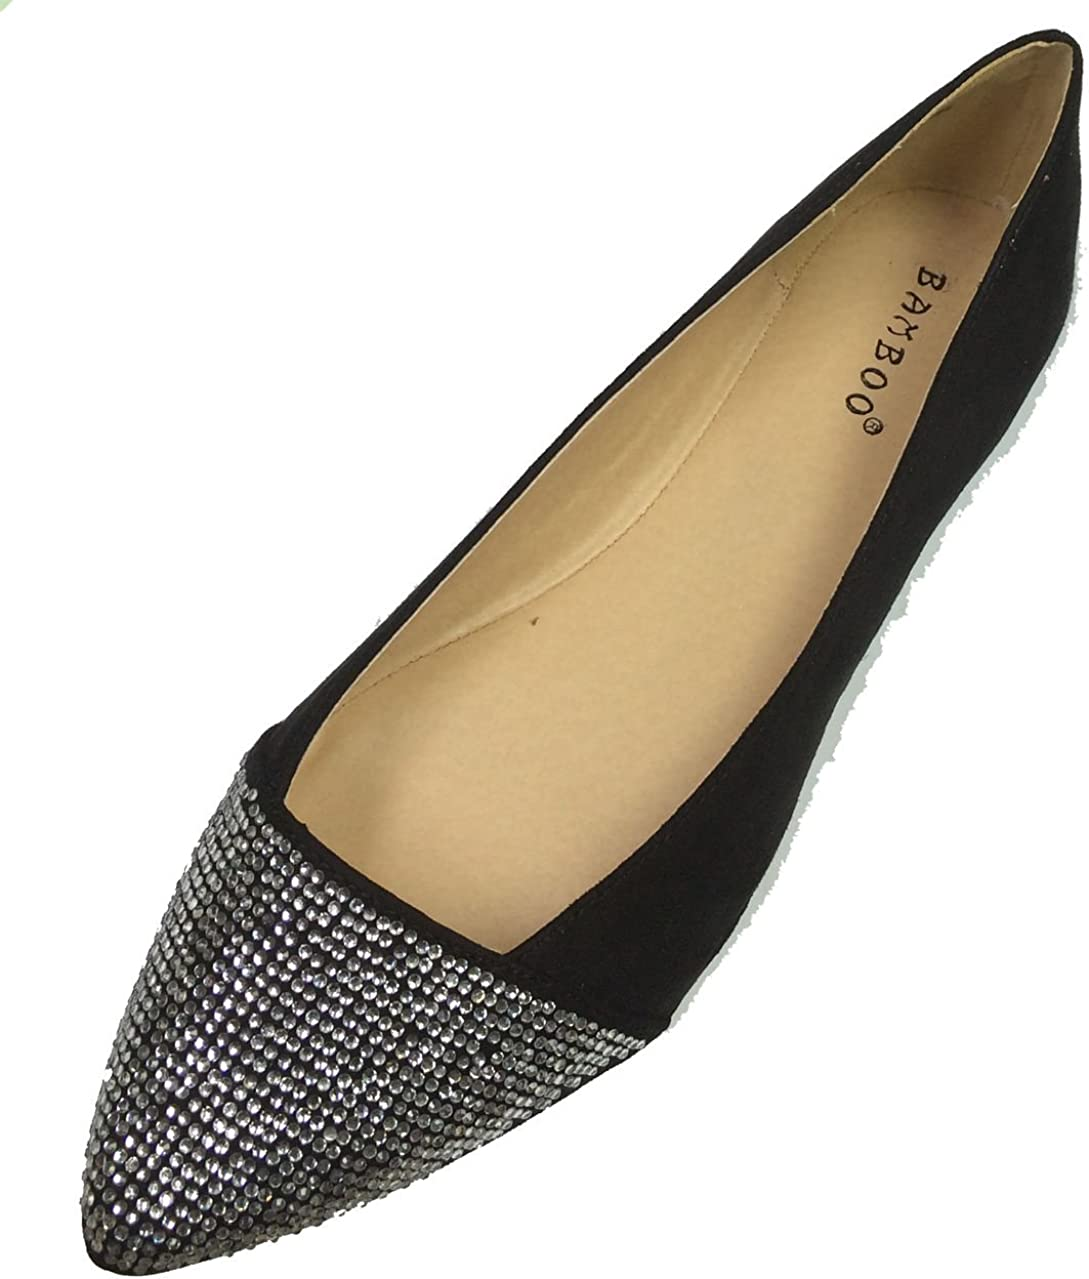 Gear One Women's Ladies' Sequin On Slip Basic Ranking Ranking TOP9 TOP13 Loafer Flat